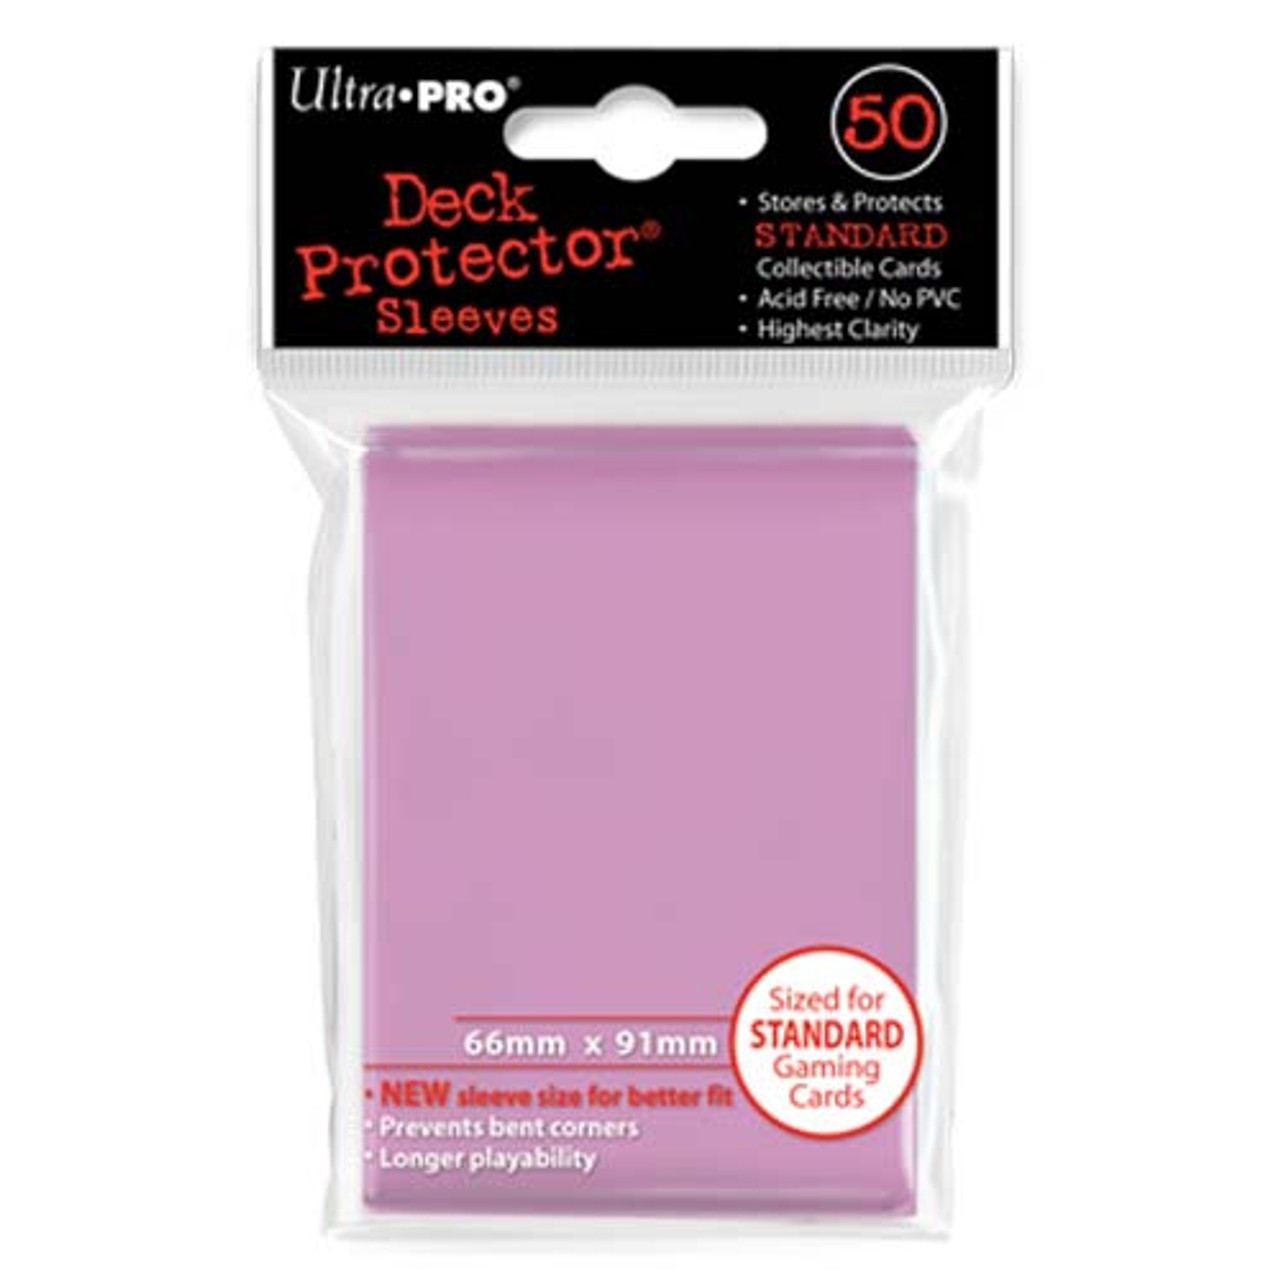 Deck Protectors - Solid - Pink (One Pack of 50)